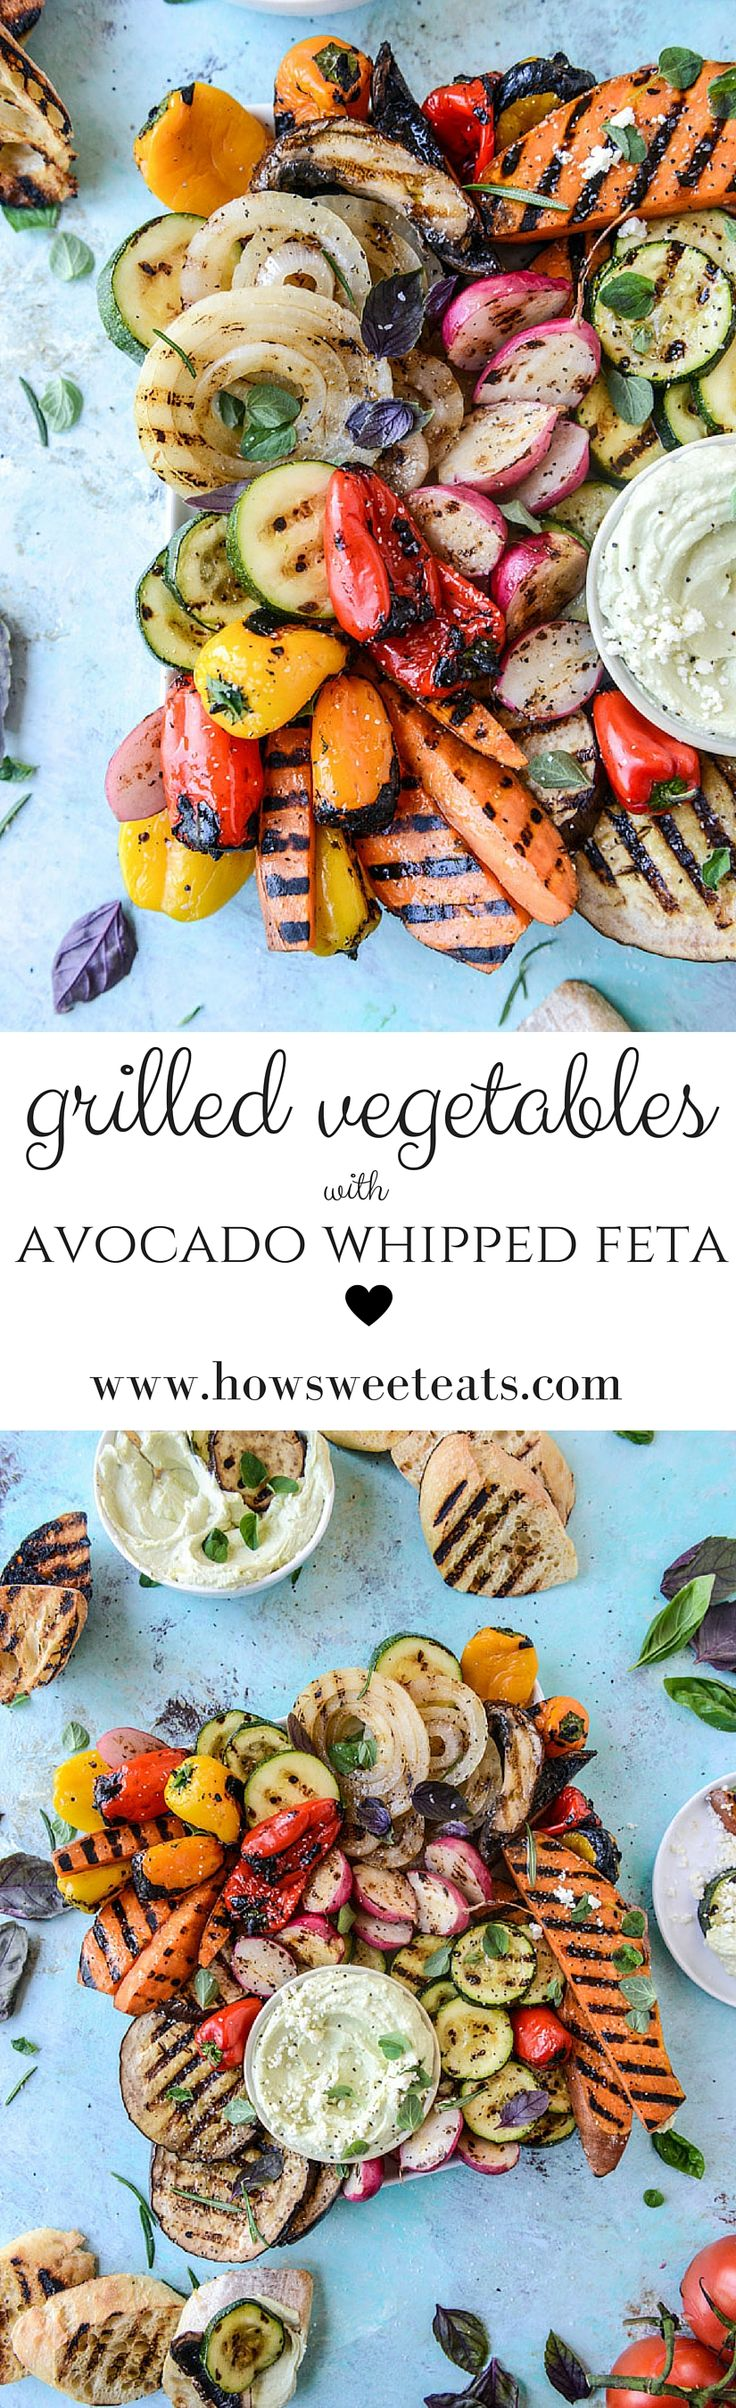 marinated grilled veggies with avocado whipped feta! by @howsweeteats I howsweeteats.com